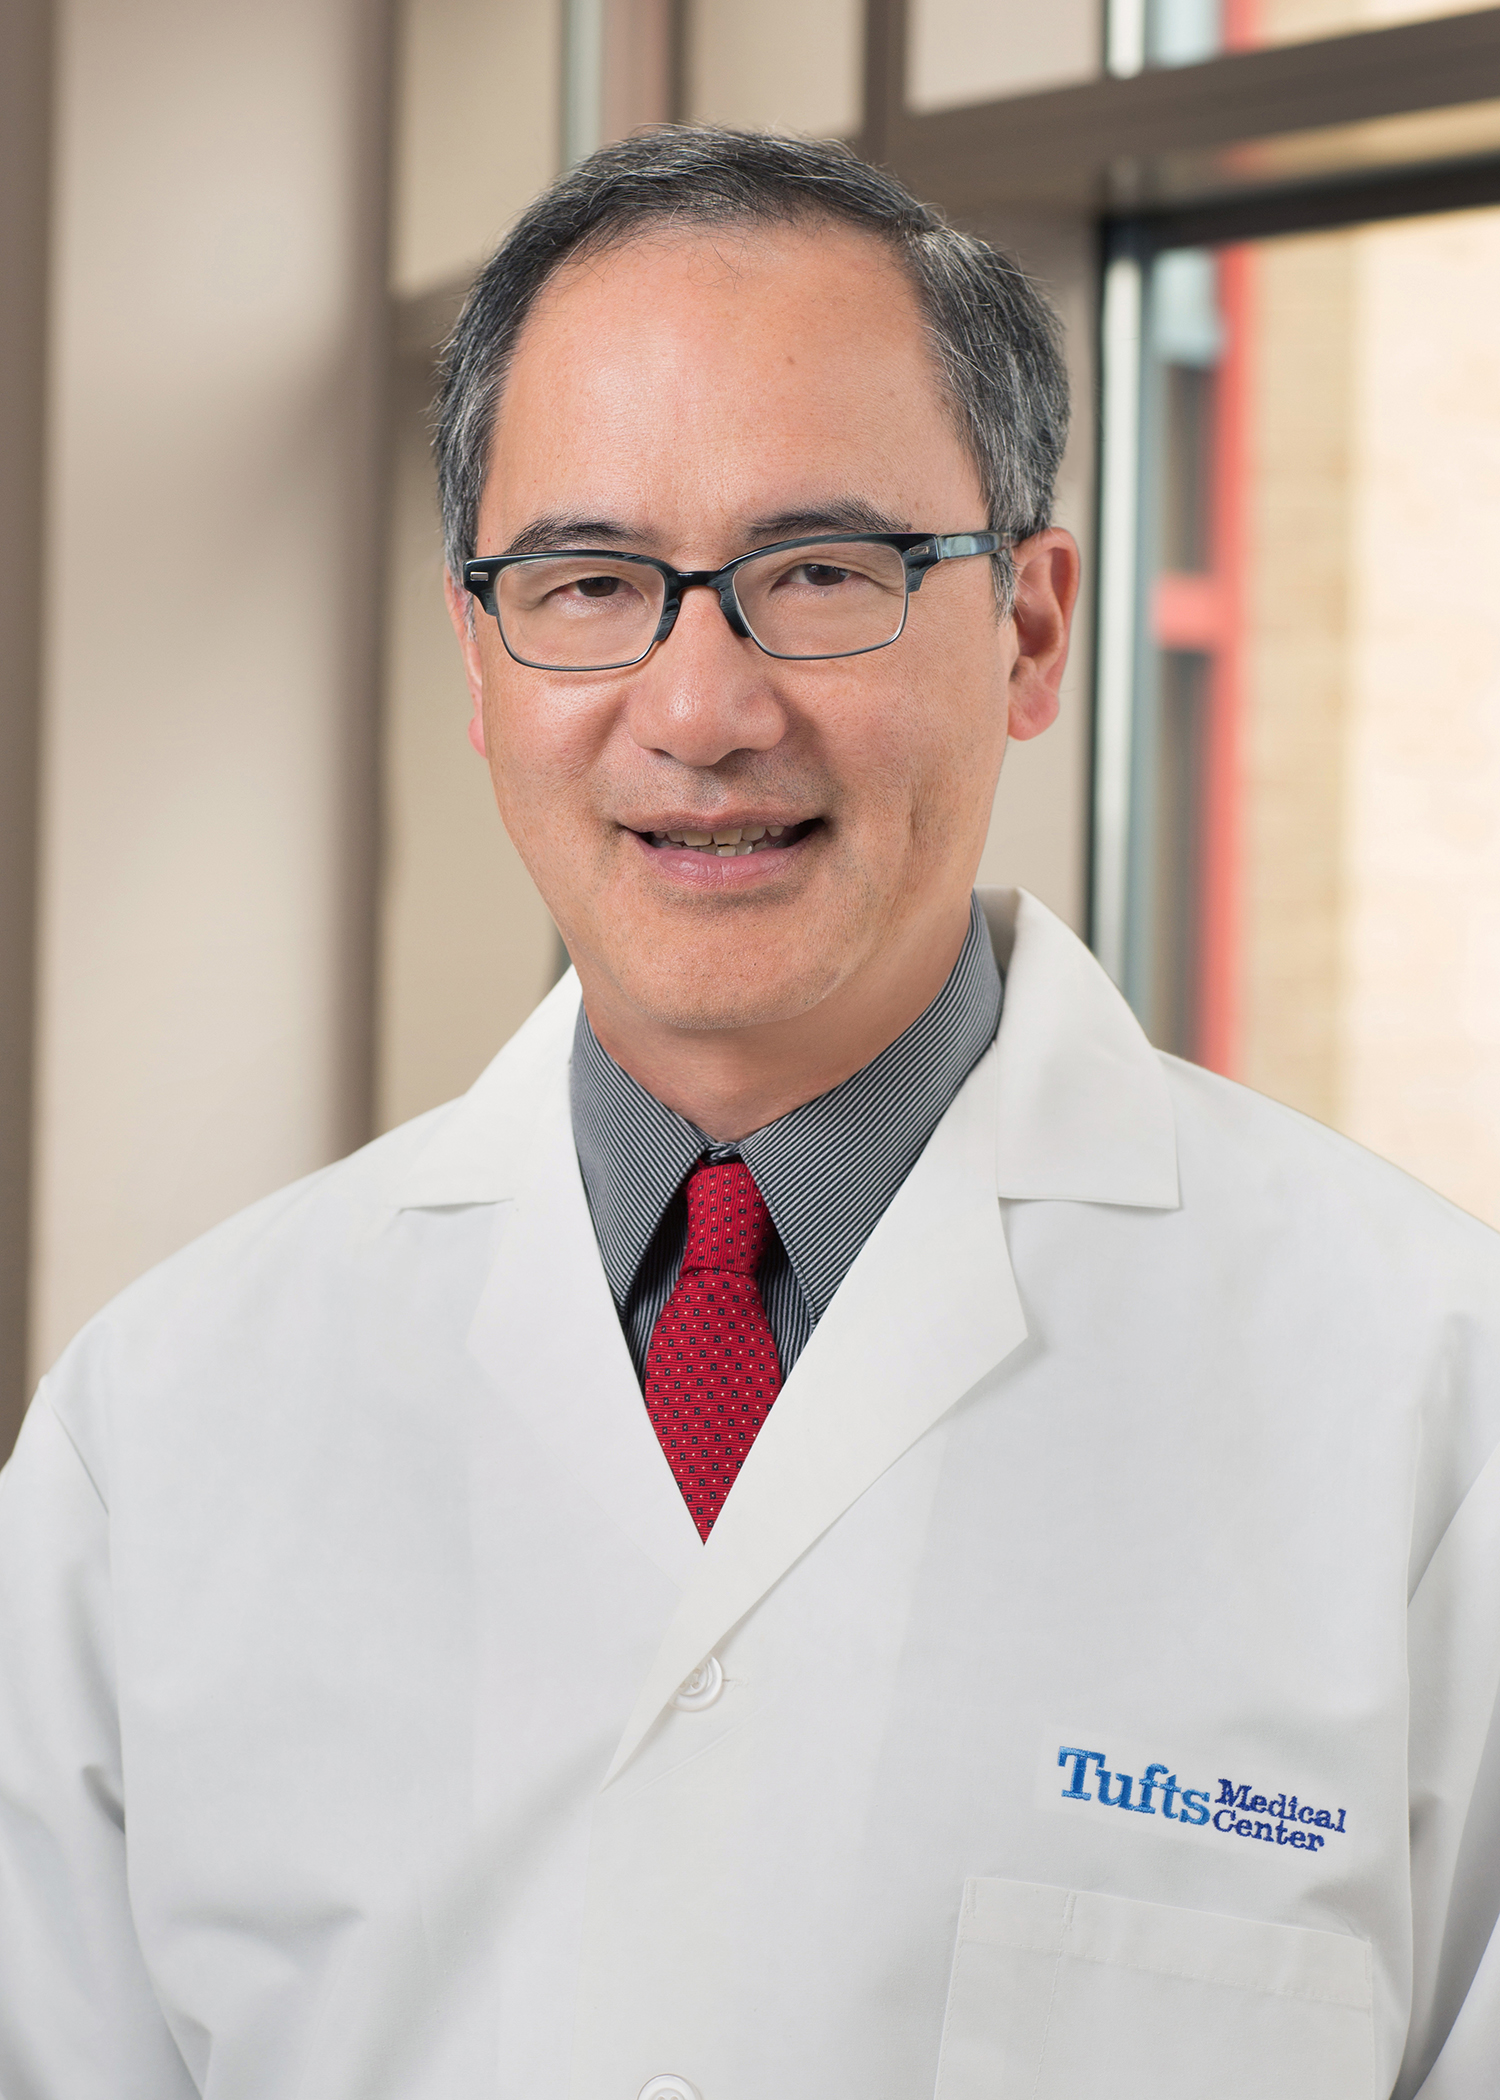 Michael T. Chin, MD, PhD